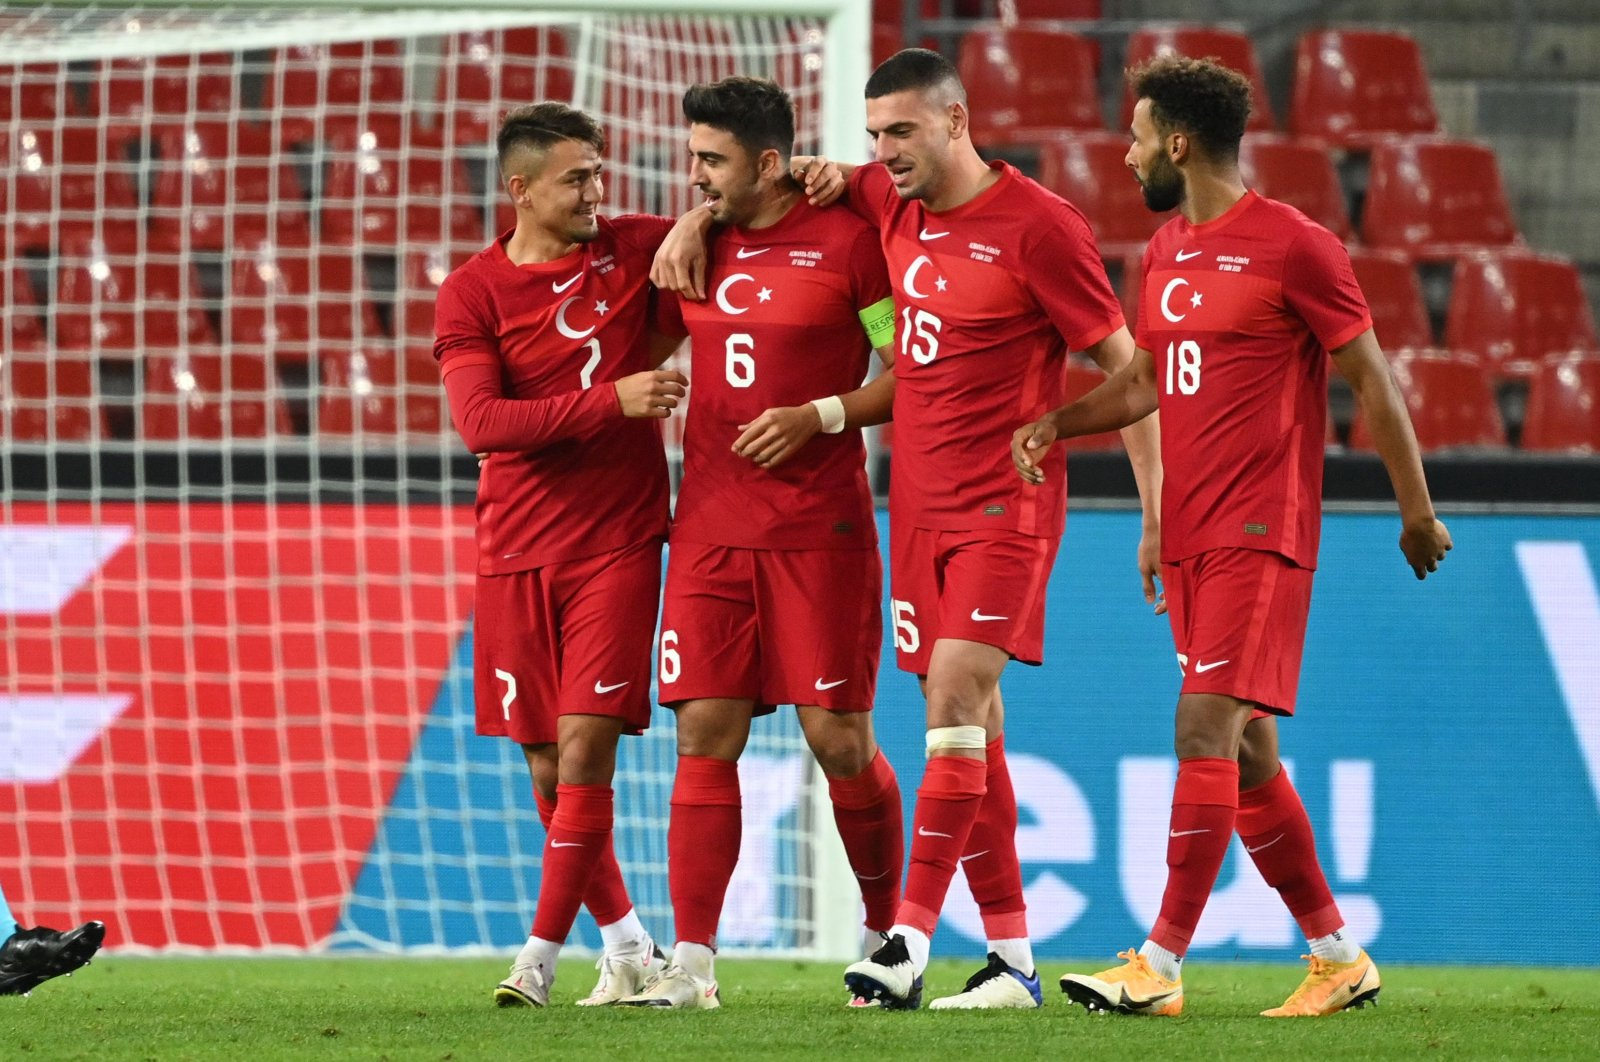 Turkey players celebrate a goal during a friendly match against Germany, in Cologne, Germany, Oct. 7, 2020. (AFP Photo)